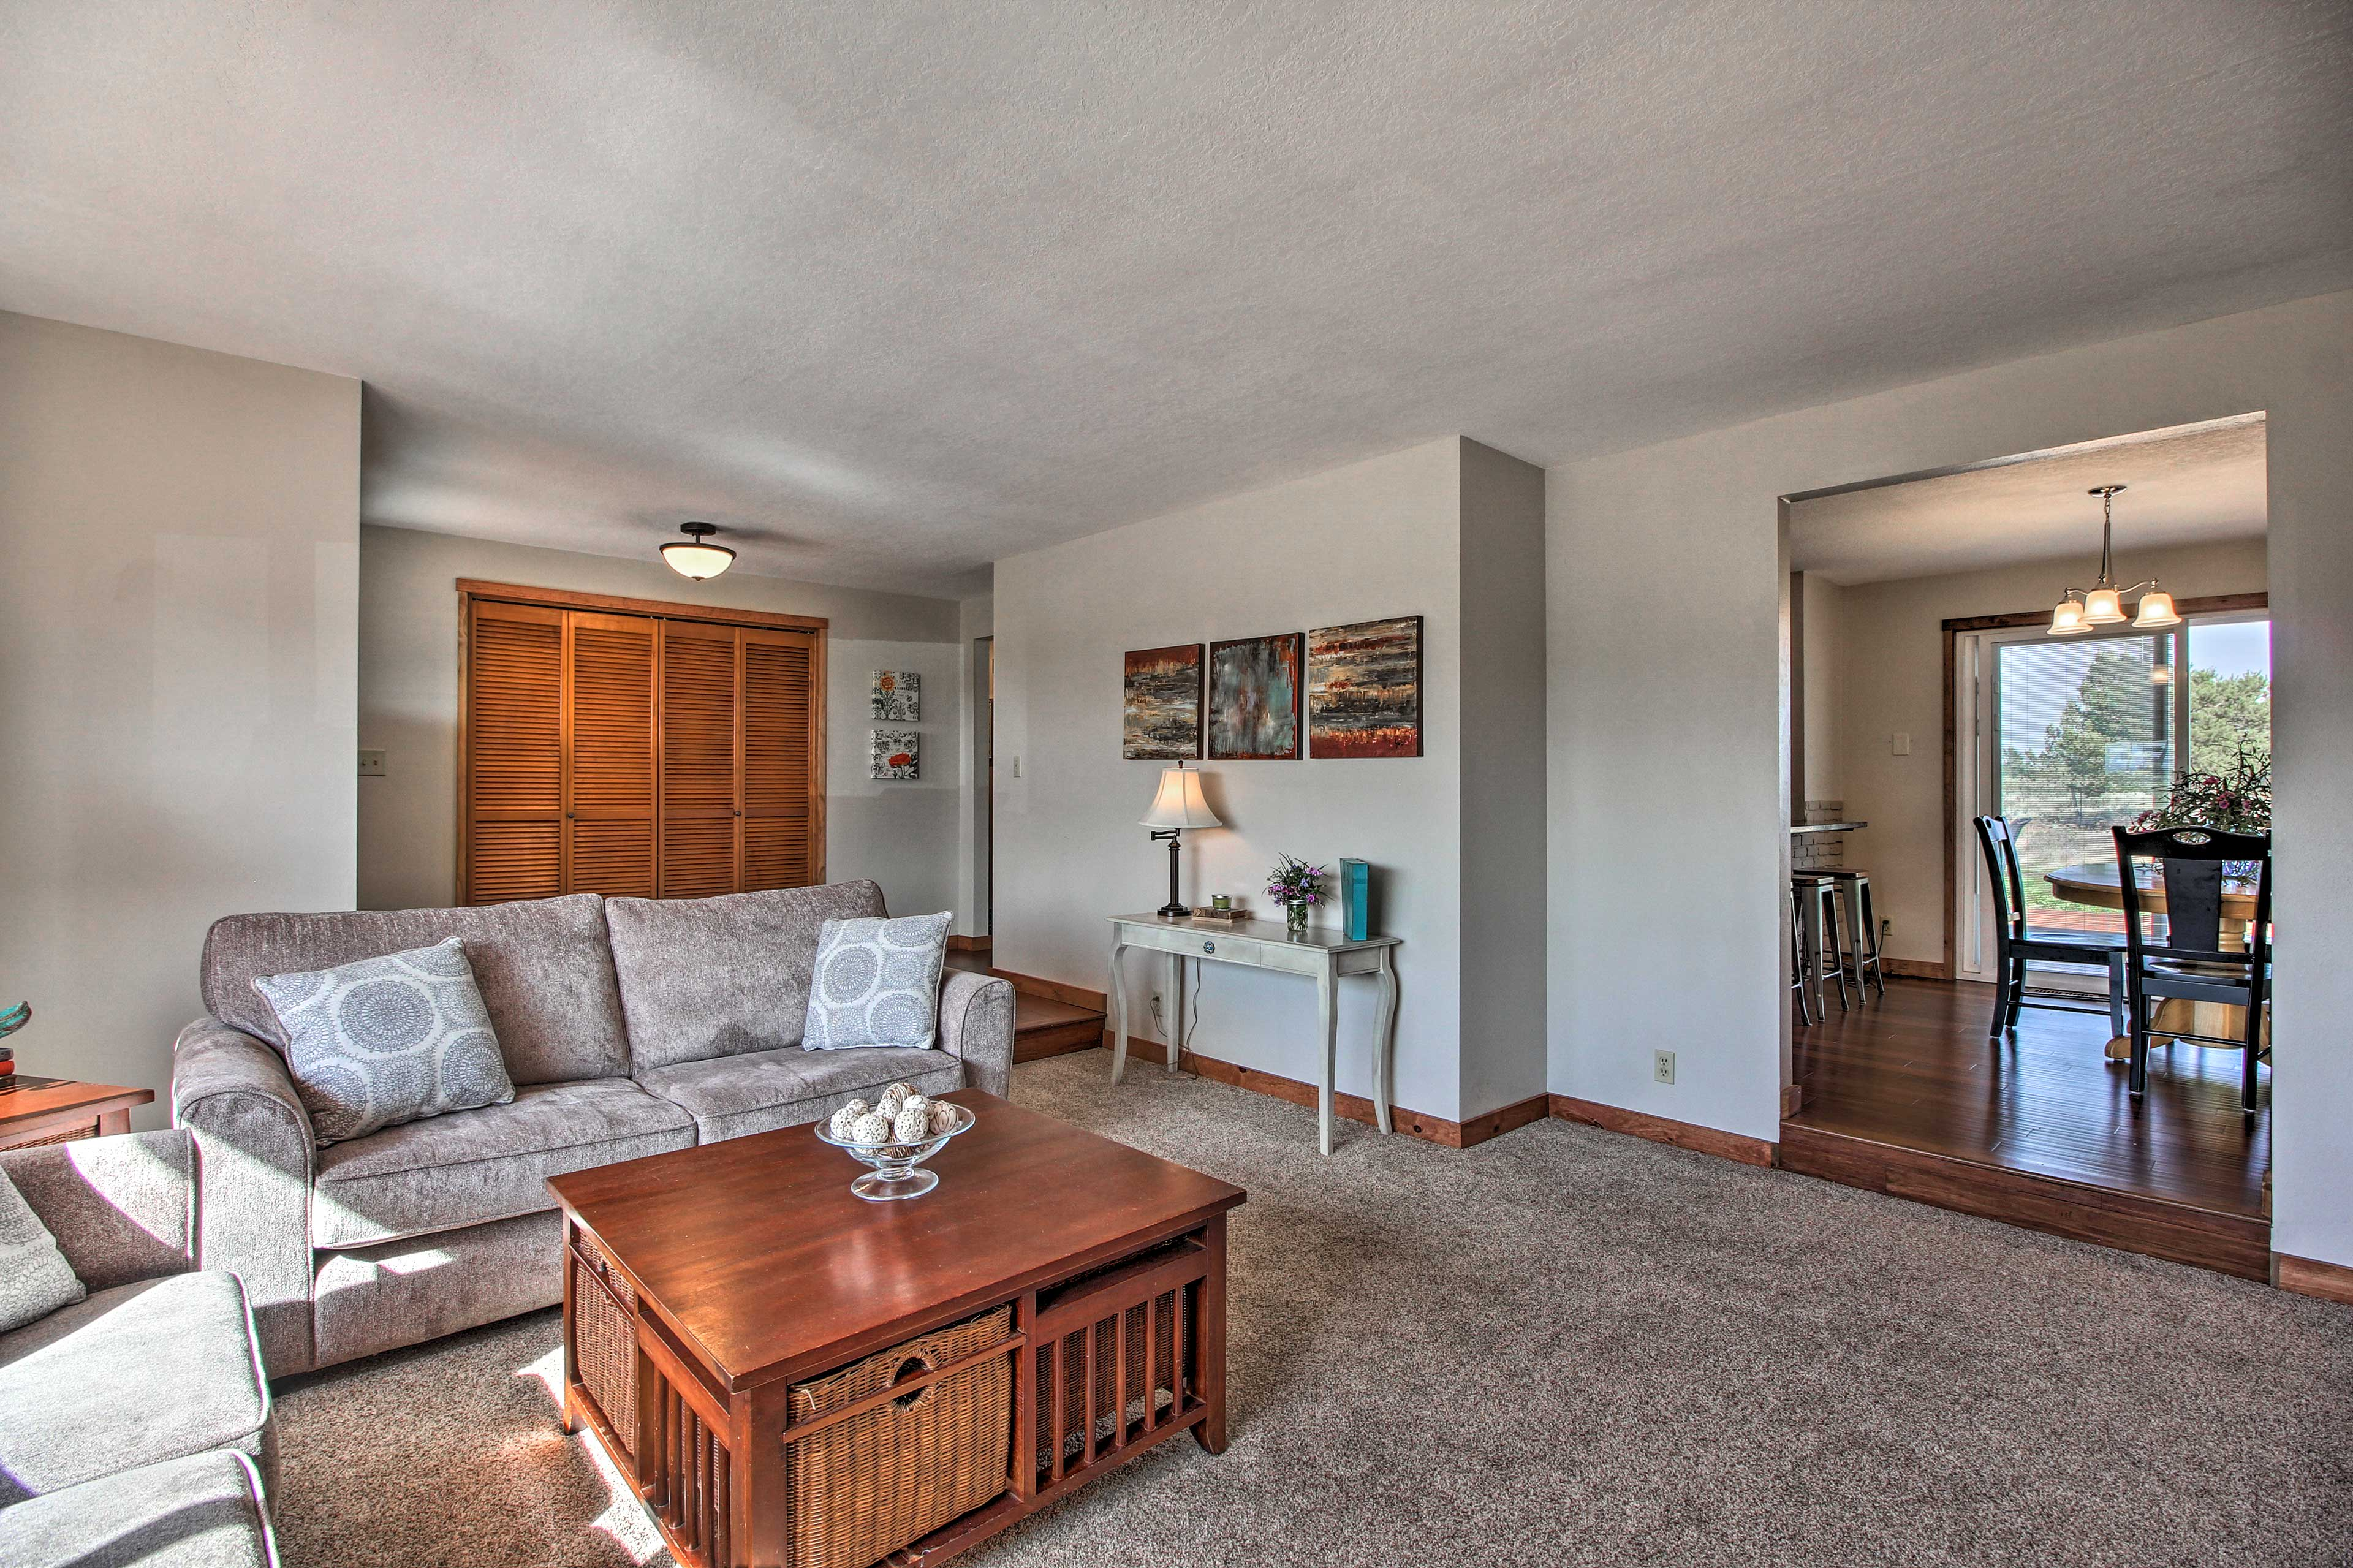 The home is filled with contemporary furnishings and decor.